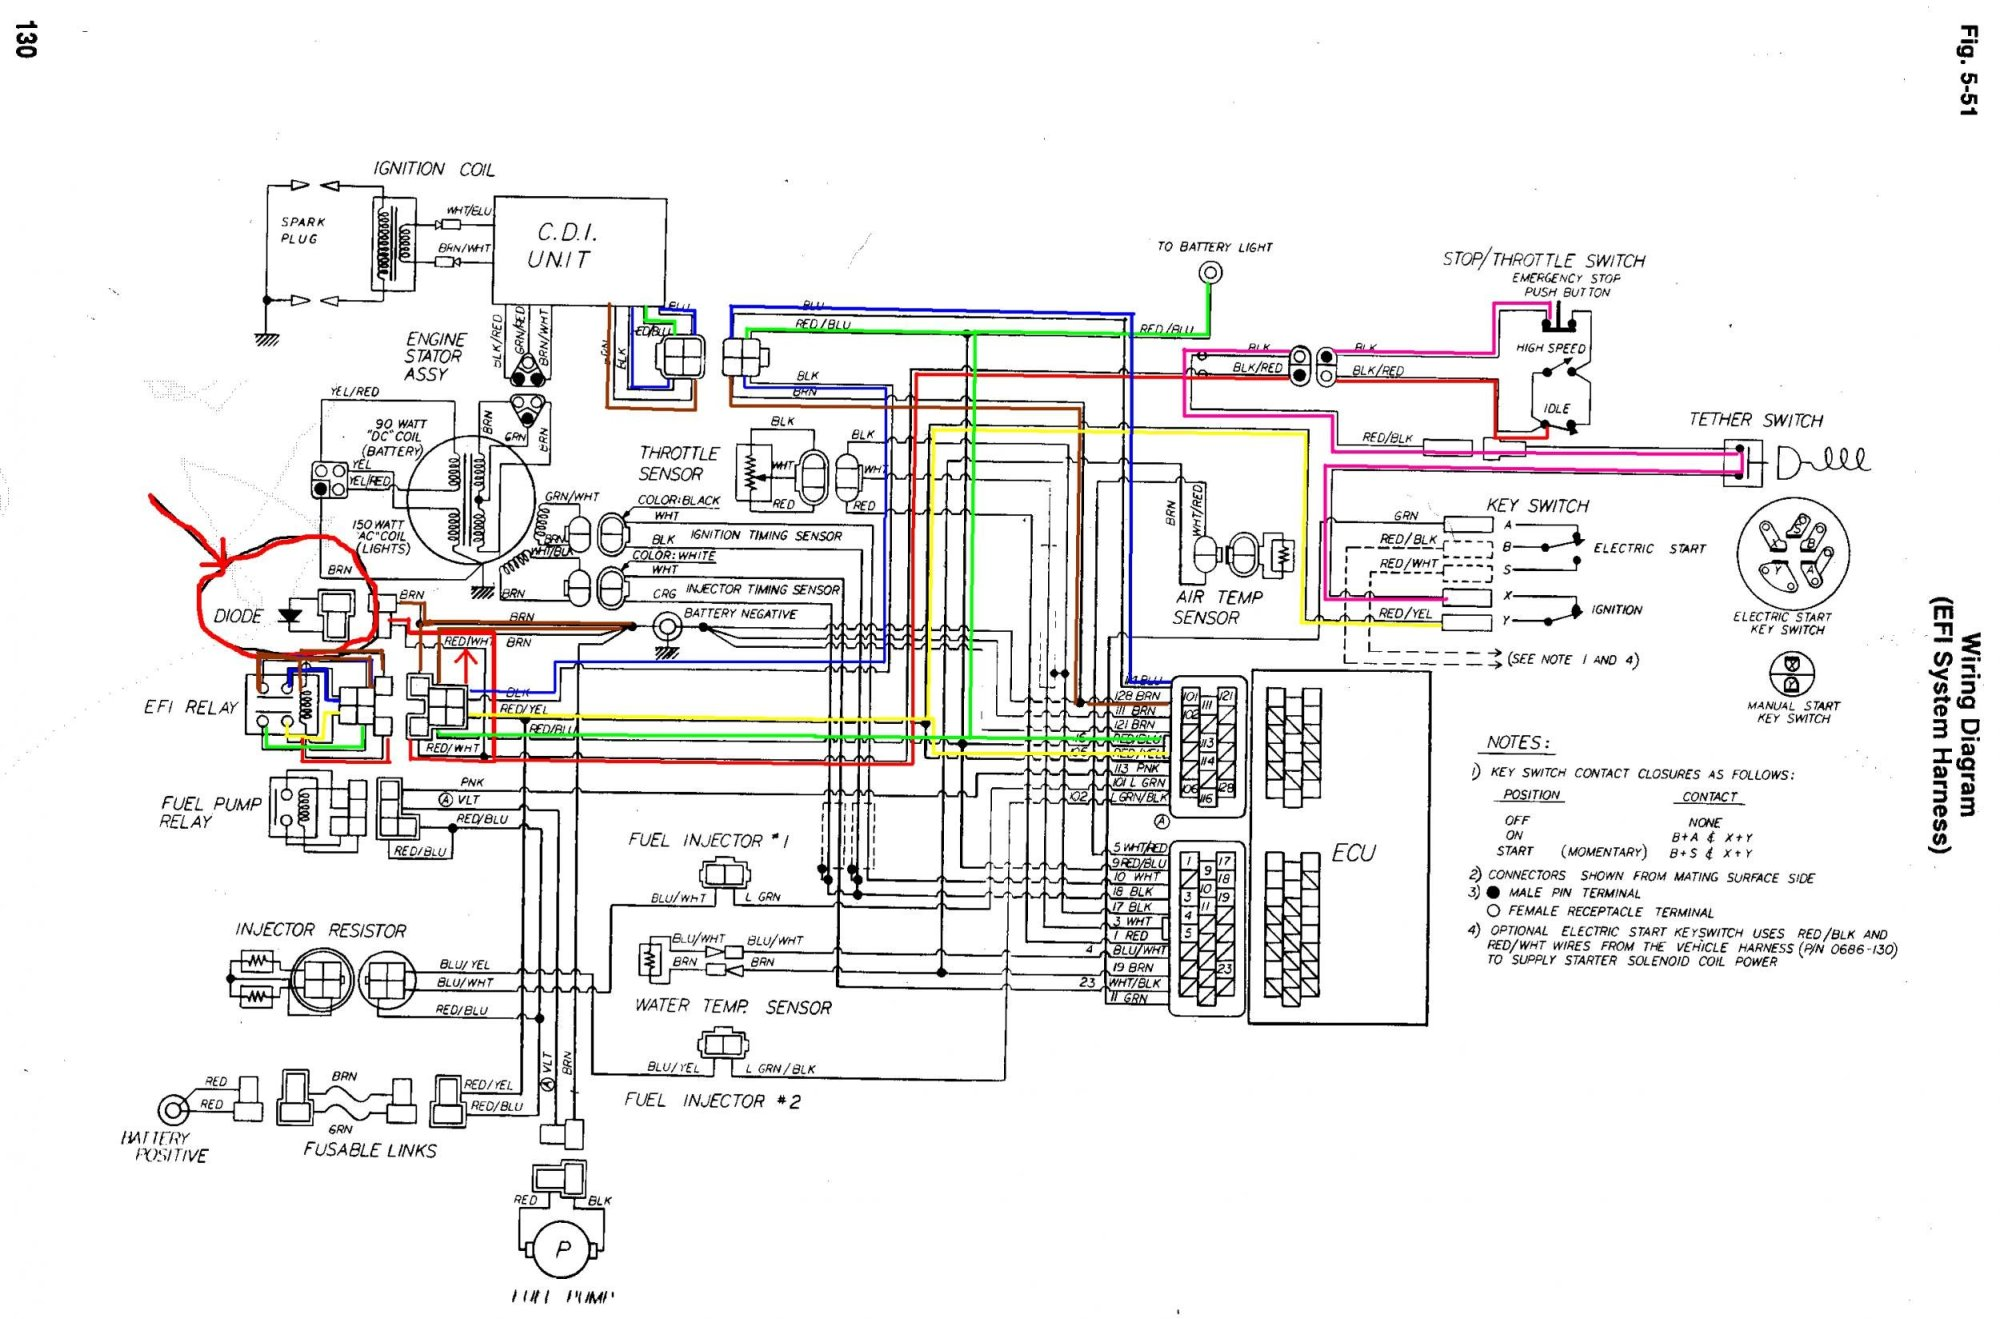 hight resolution of suzuki 500 atv wiring diagram use wiring diagramsuzuki 700 1994 wiring diagram wiring diagram page suzuki